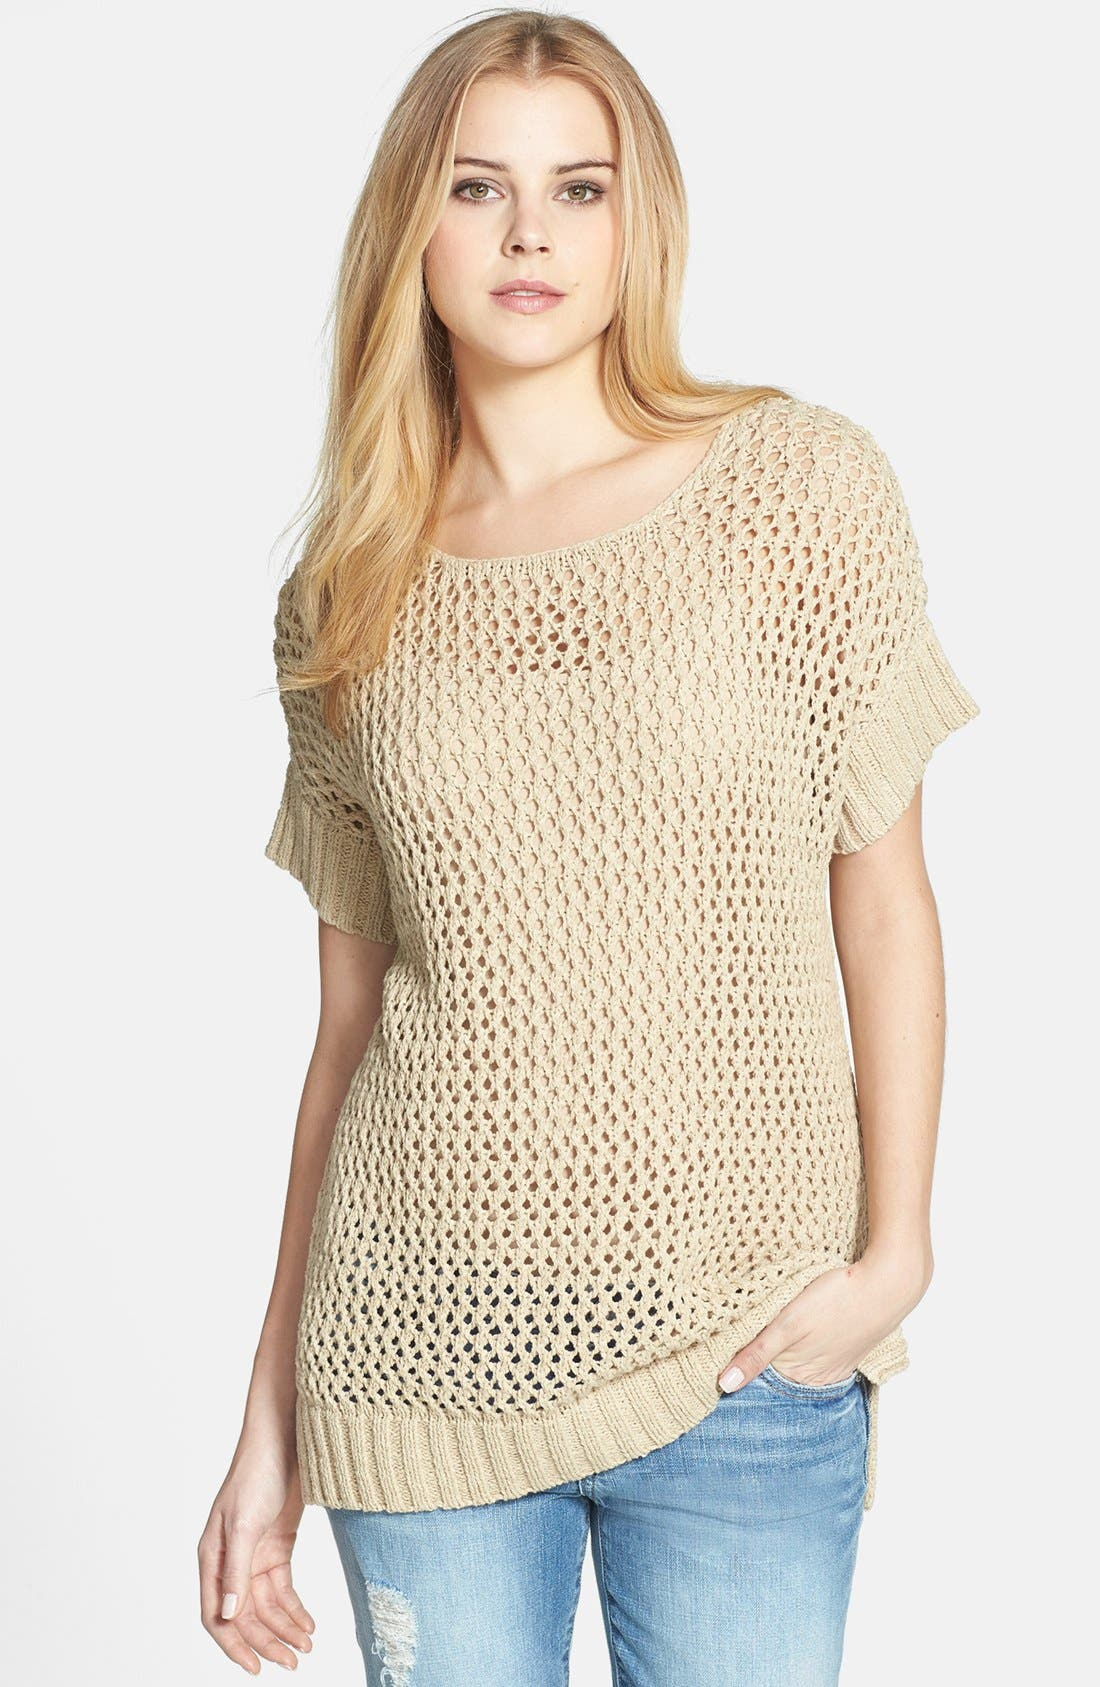 Alternate Image 1 Selected - Vince Camuto Open Stitch Cotton Blend Sweater